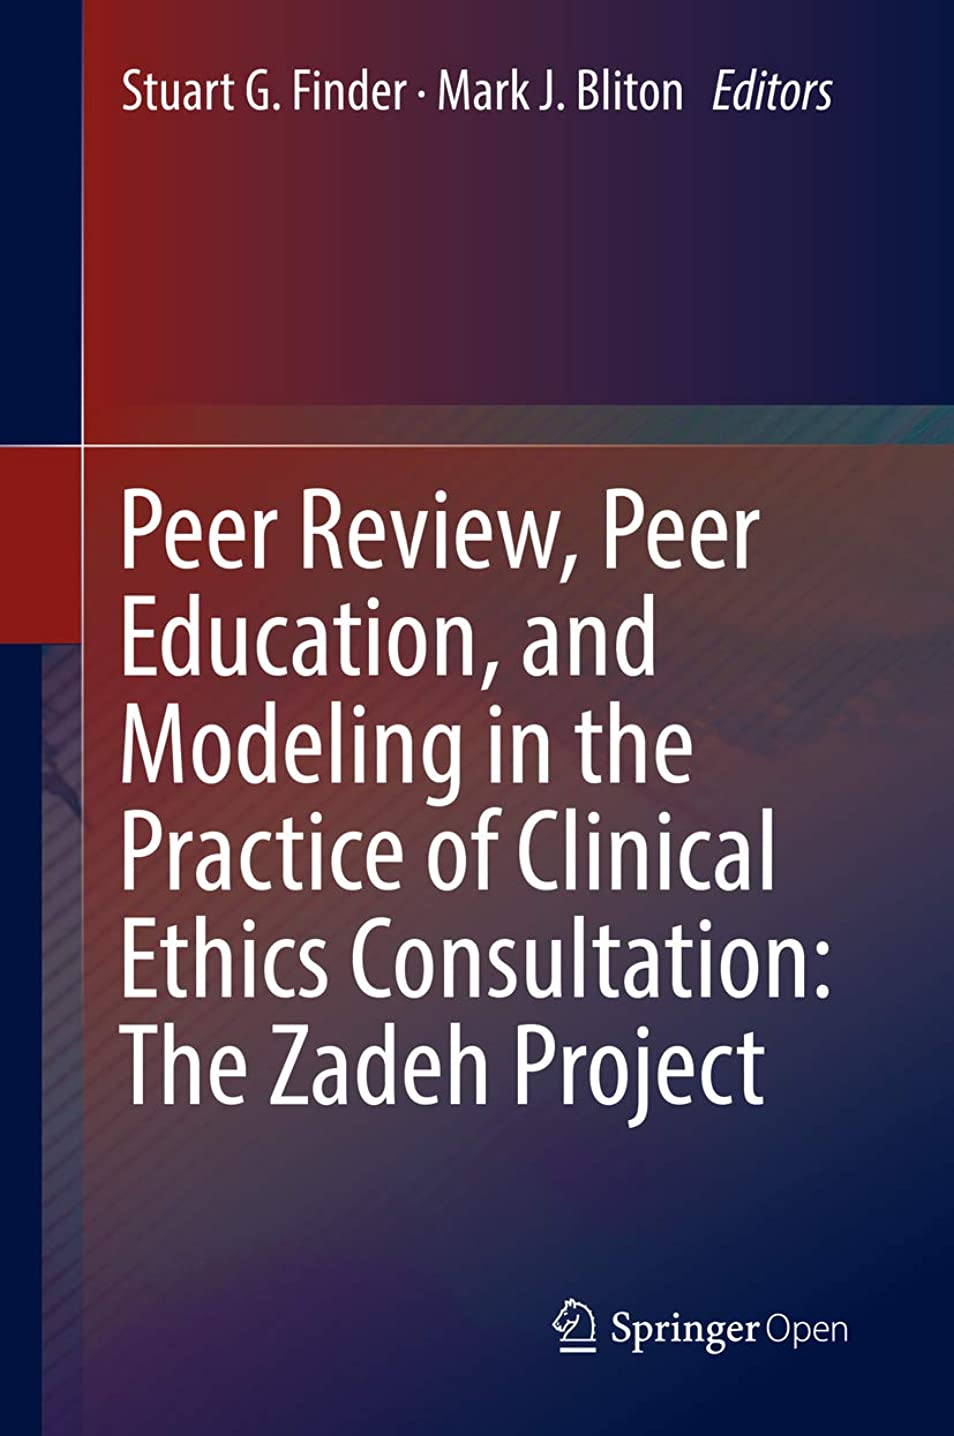 振る舞うあまりにも手足Peer Review, Peer Education, and Modeling in the Practice of Clinical Ethics Consultation: The Zadeh Project (English Edition)